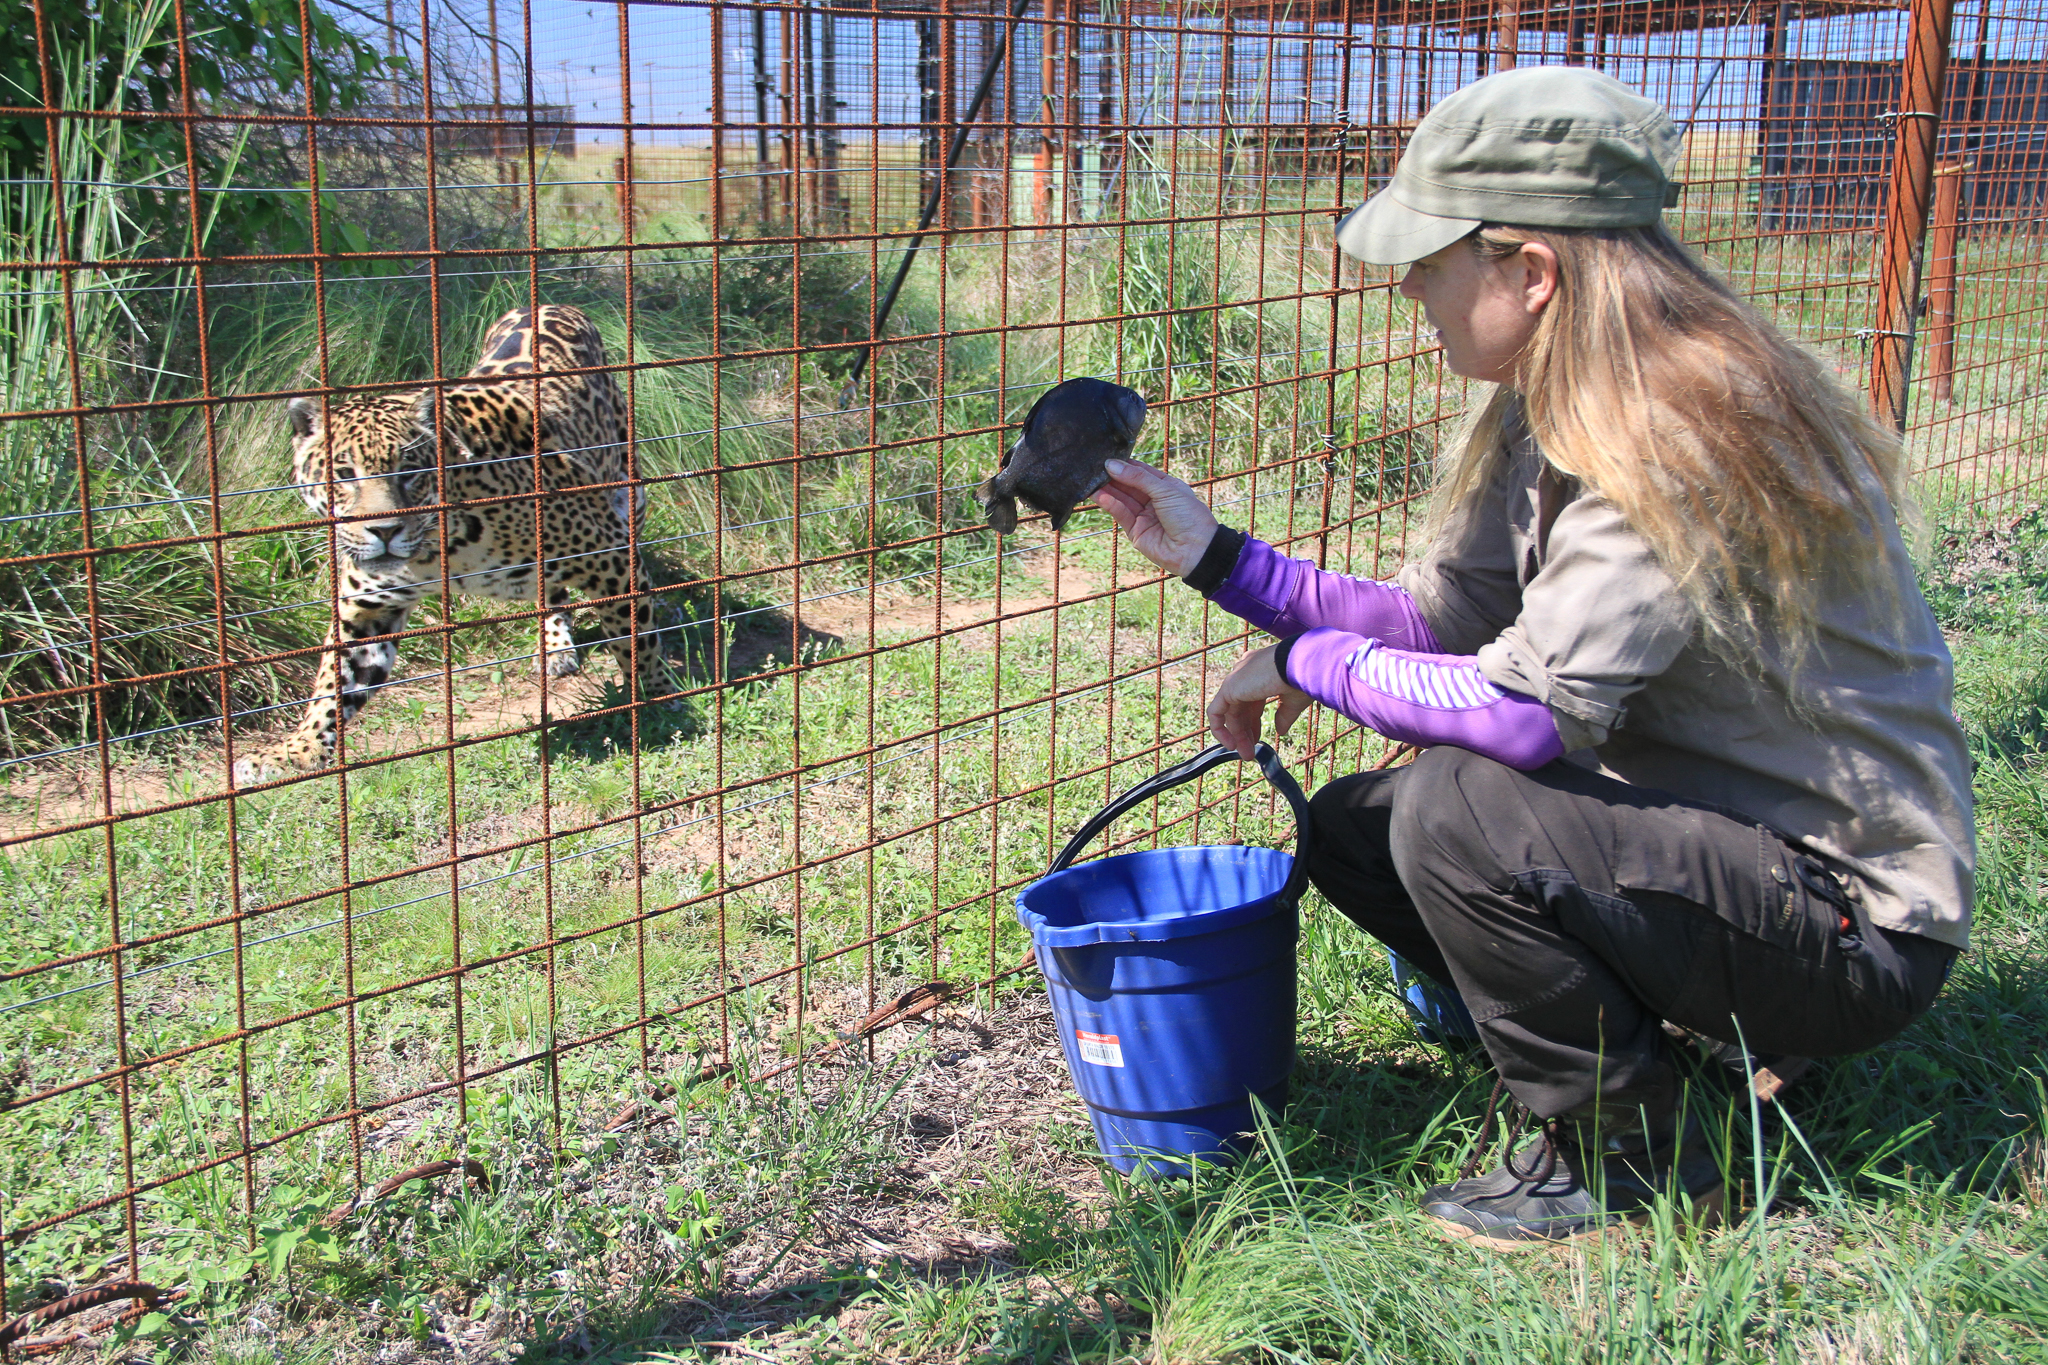 Danish big cat biologist Karina Lerdrup Spørring attracts the attention of Tobuna, a mature female jaguar, by waving a piranha. Held in captivity on the reintroduction island, Tobuna will produce the first cubs to be reintroduced to the wild in Iberá.—Photo by Mike Unwin